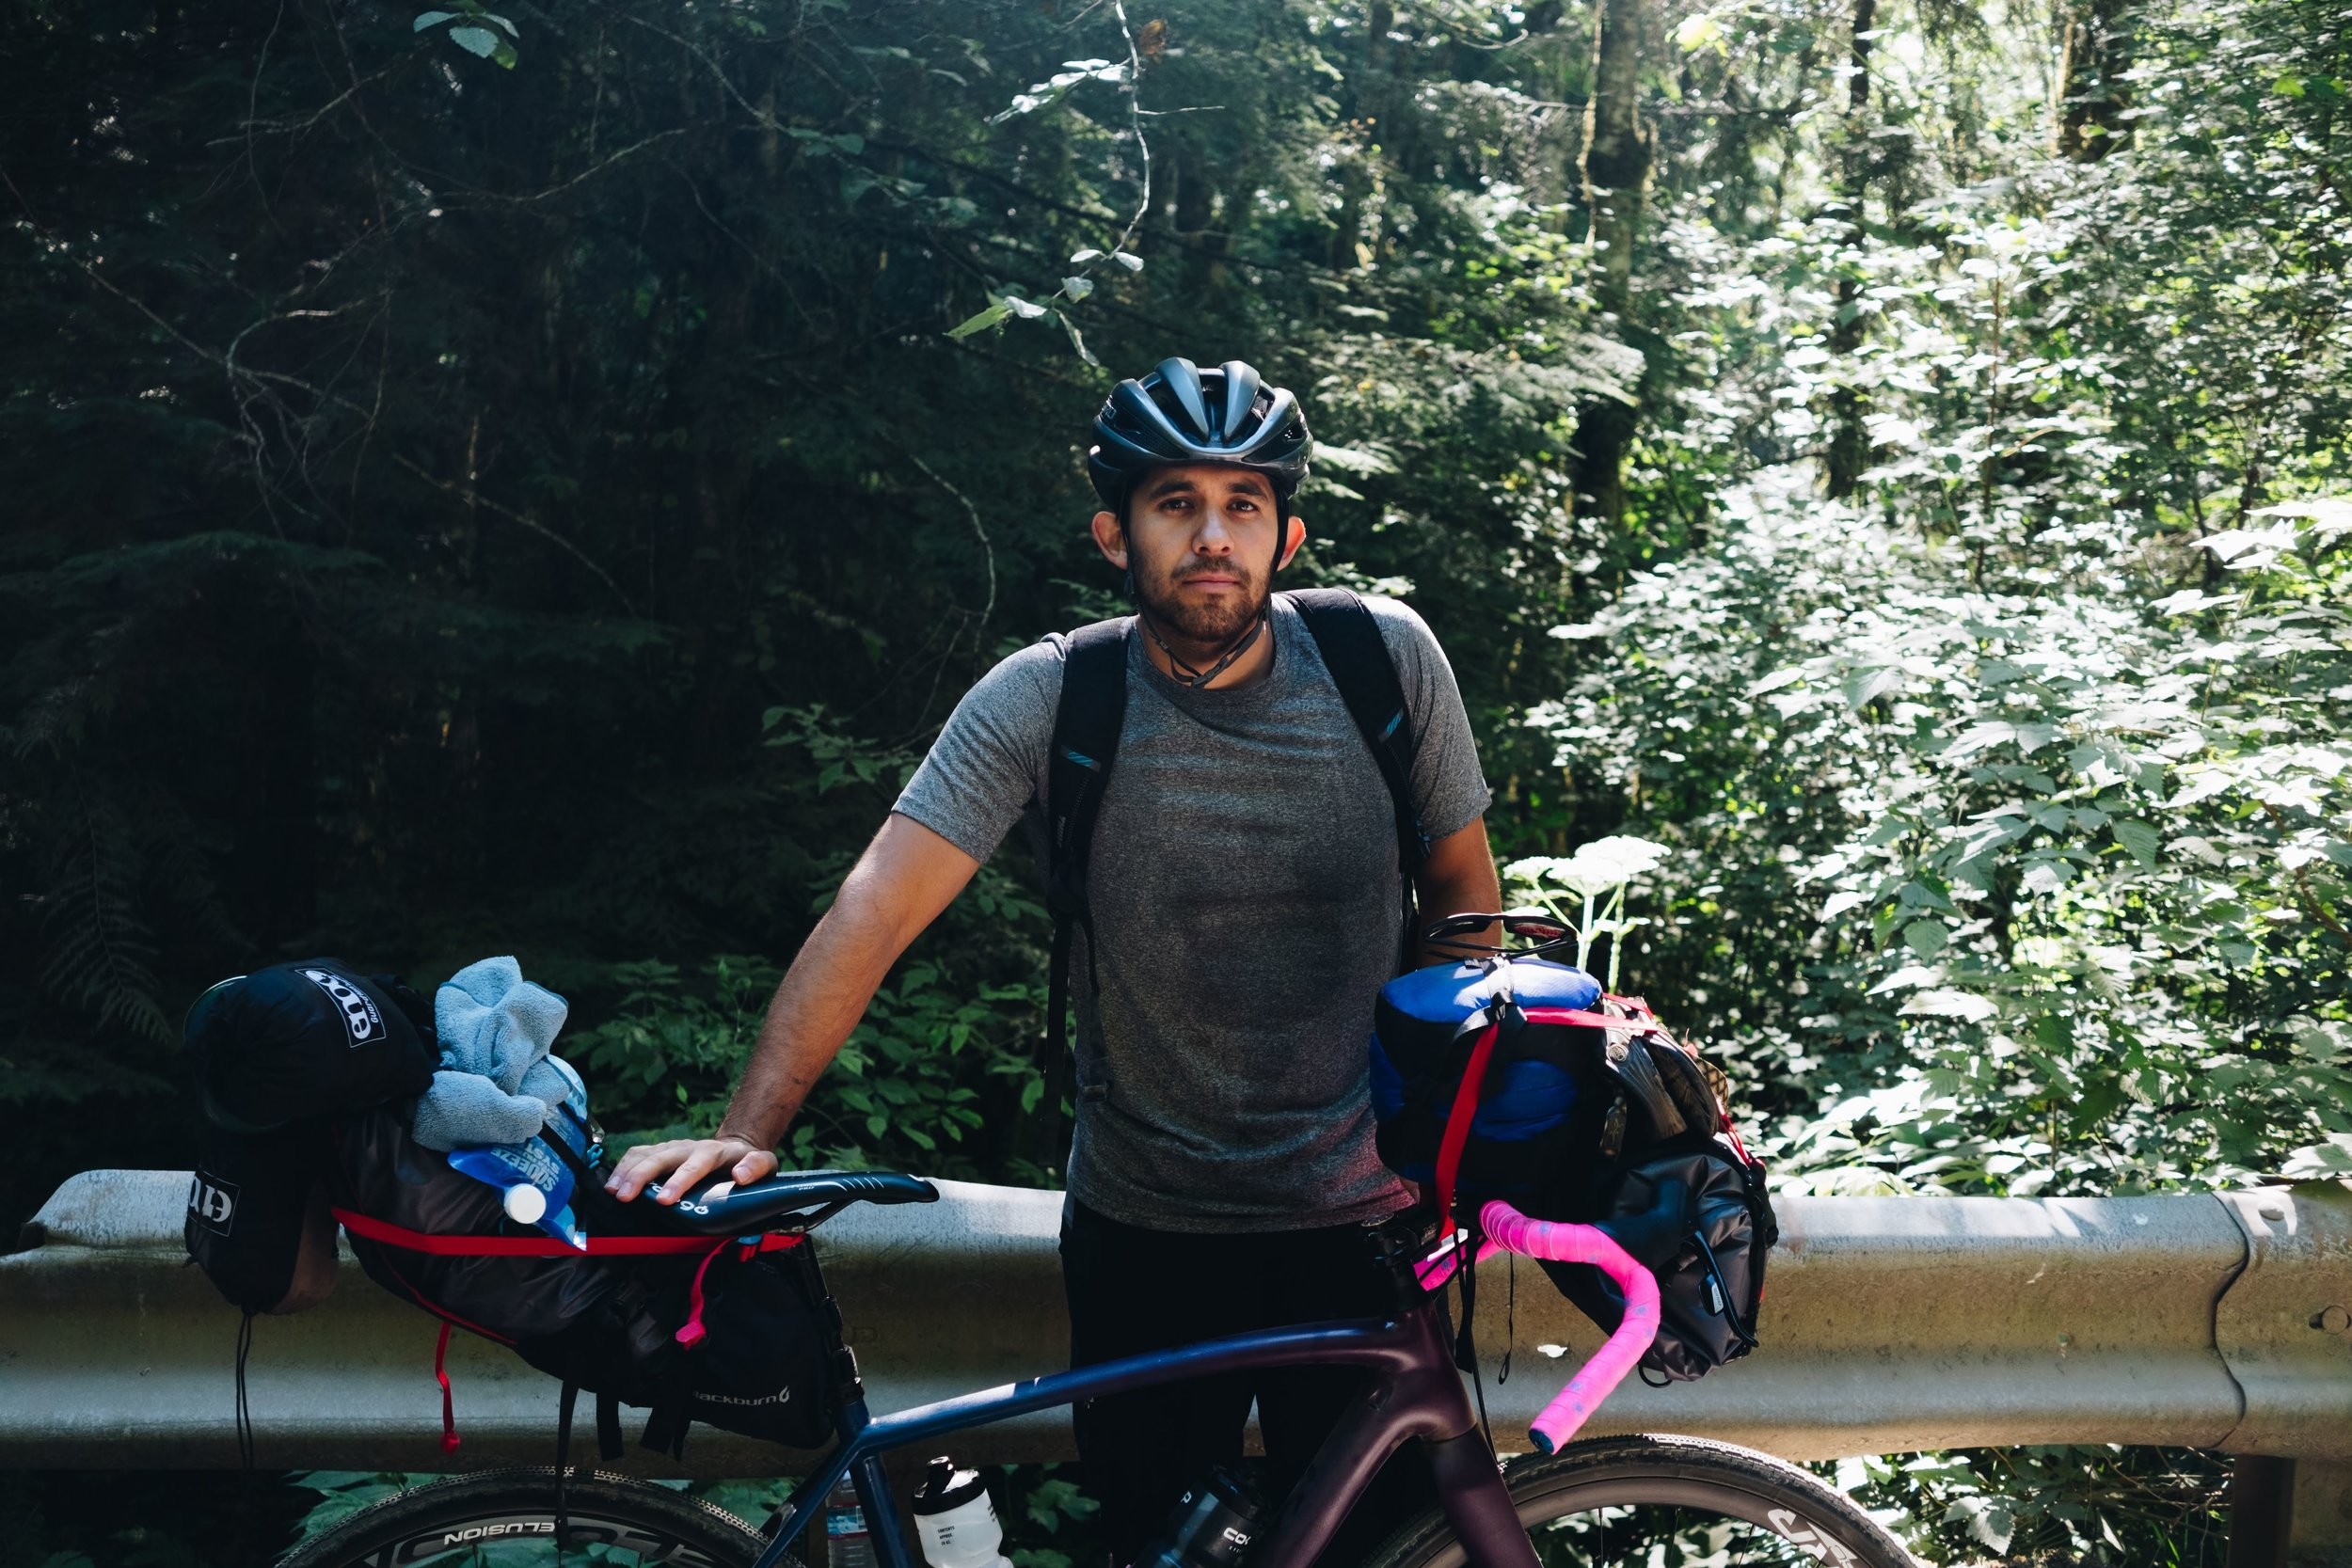 - Esteban went with a more cost efficient build just taking his old Specialized Crux putting 40mm tires, lots of straps, carabiners and a backpack.